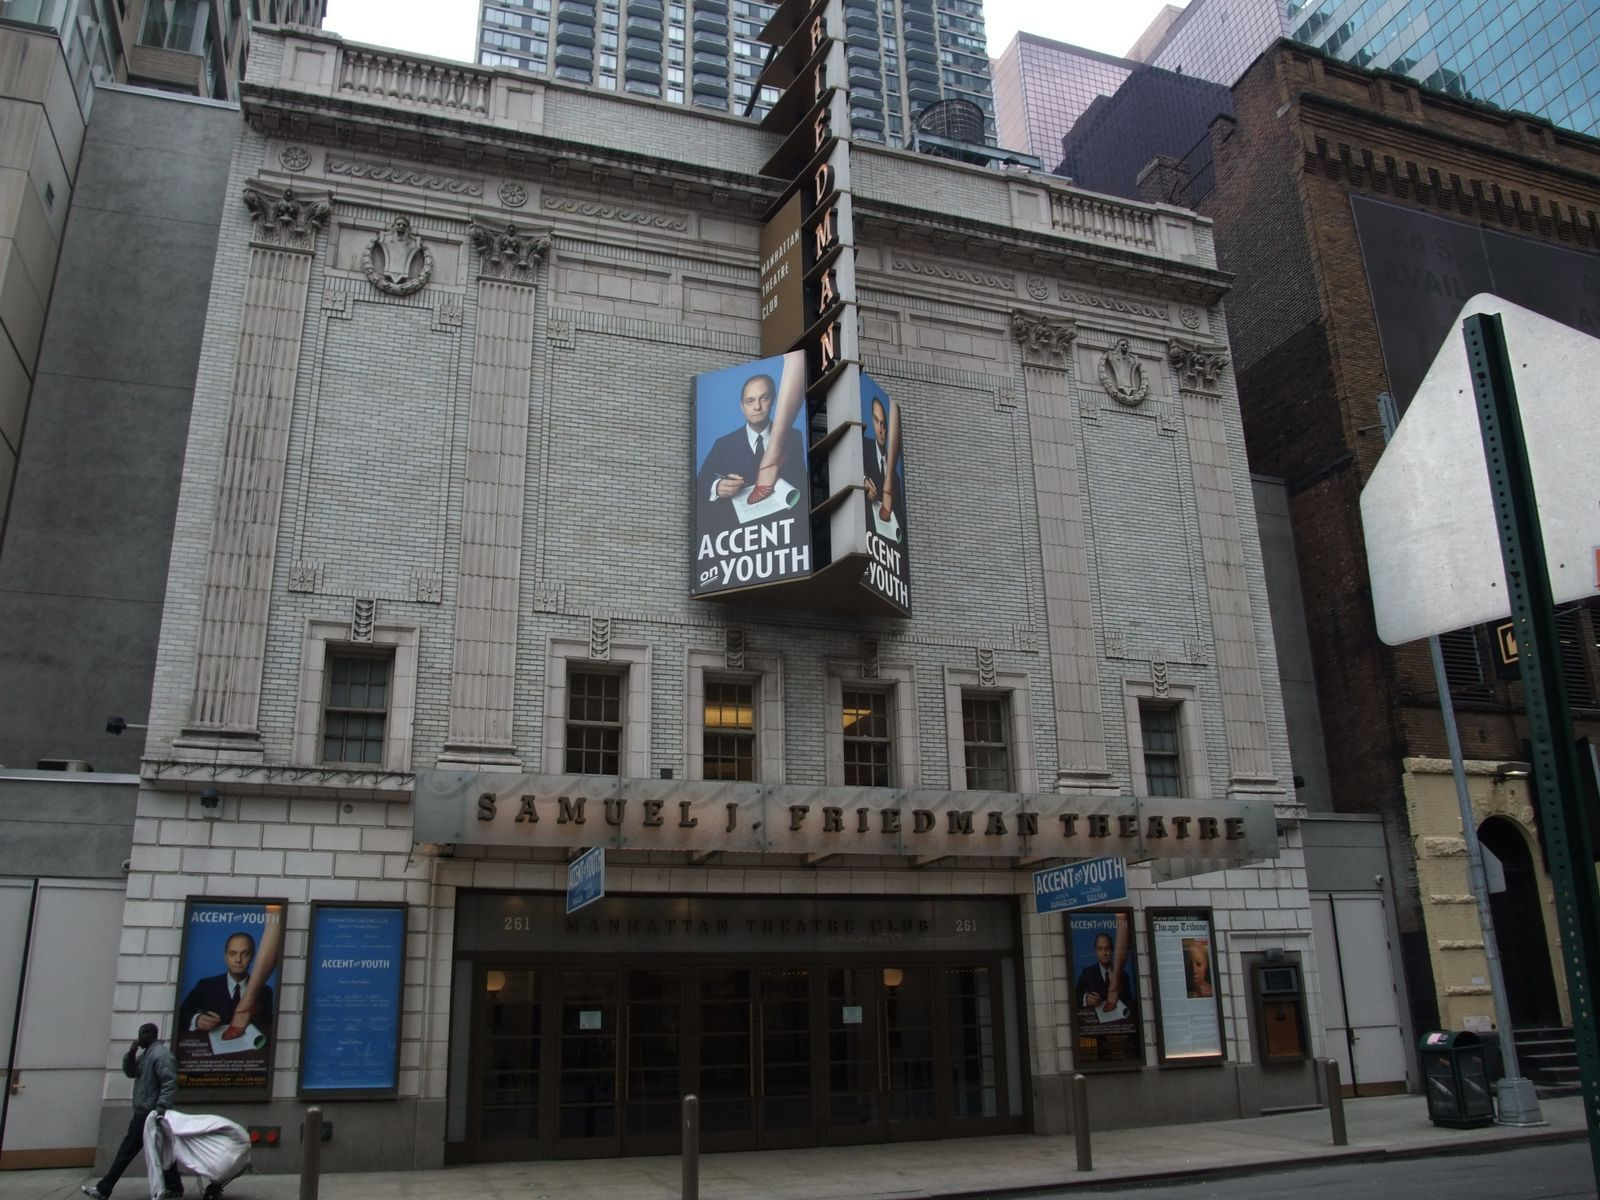 Samuel J Friedman Theatre Theater In Midtown West New York